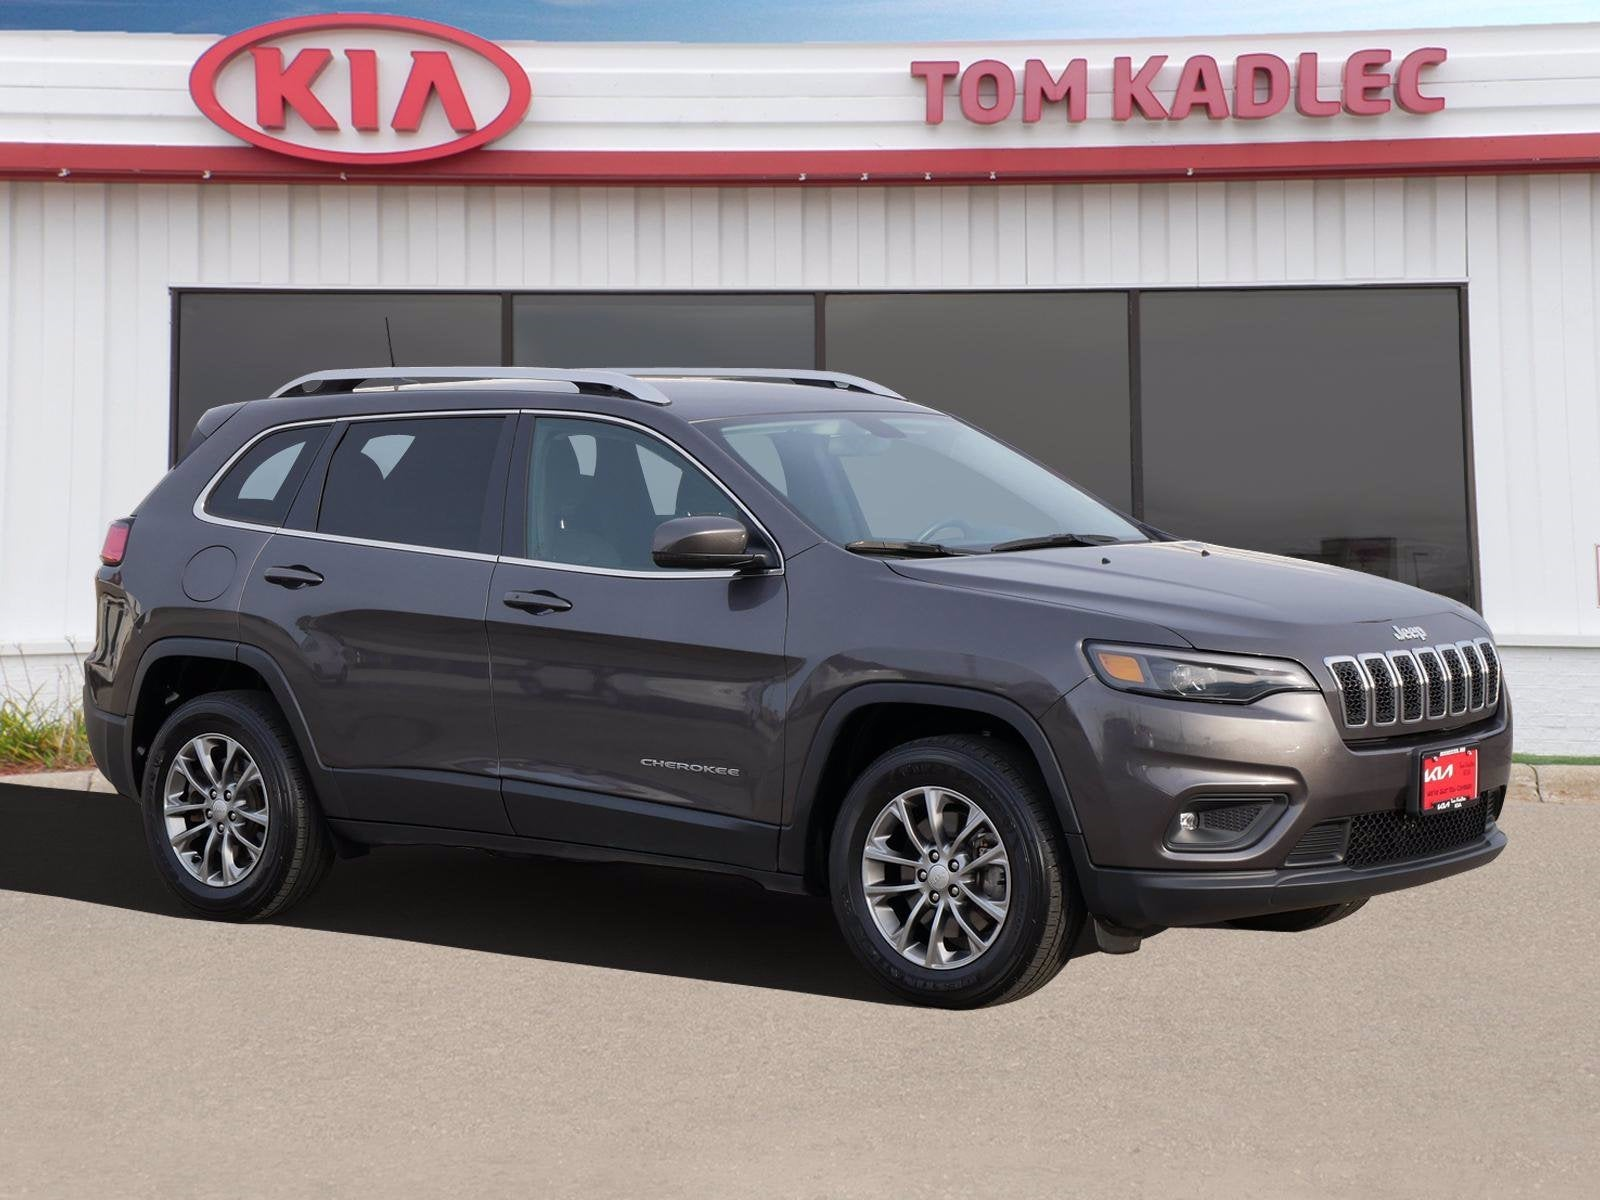 Used 2019 Jeep Cherokee Latitude Plus with VIN 1C4PJMLB2KD337104 for sale in Rochester, Minnesota